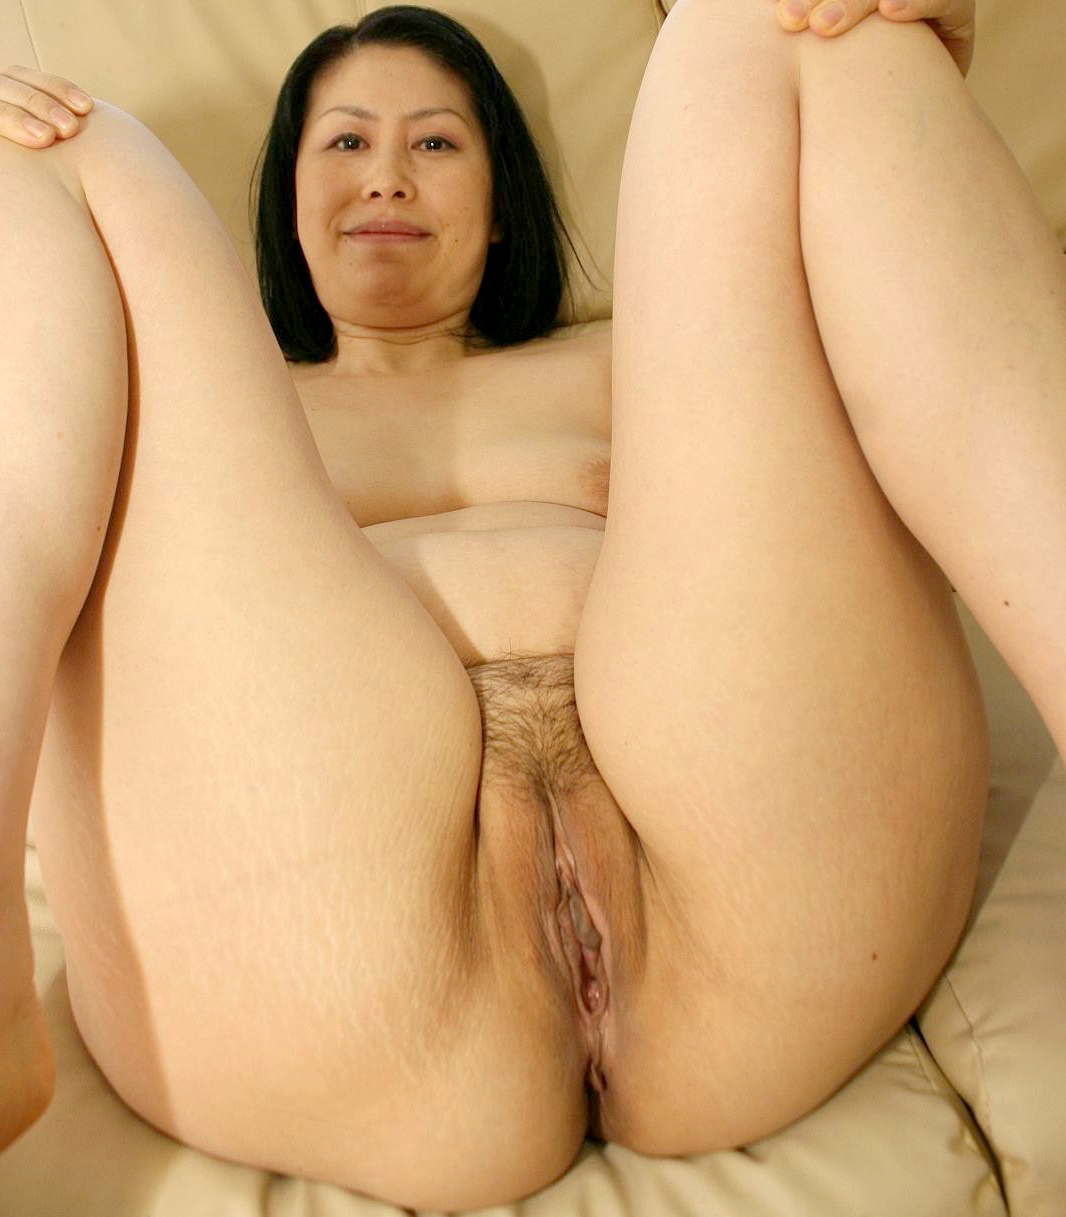 bared old asian lady xxx pics